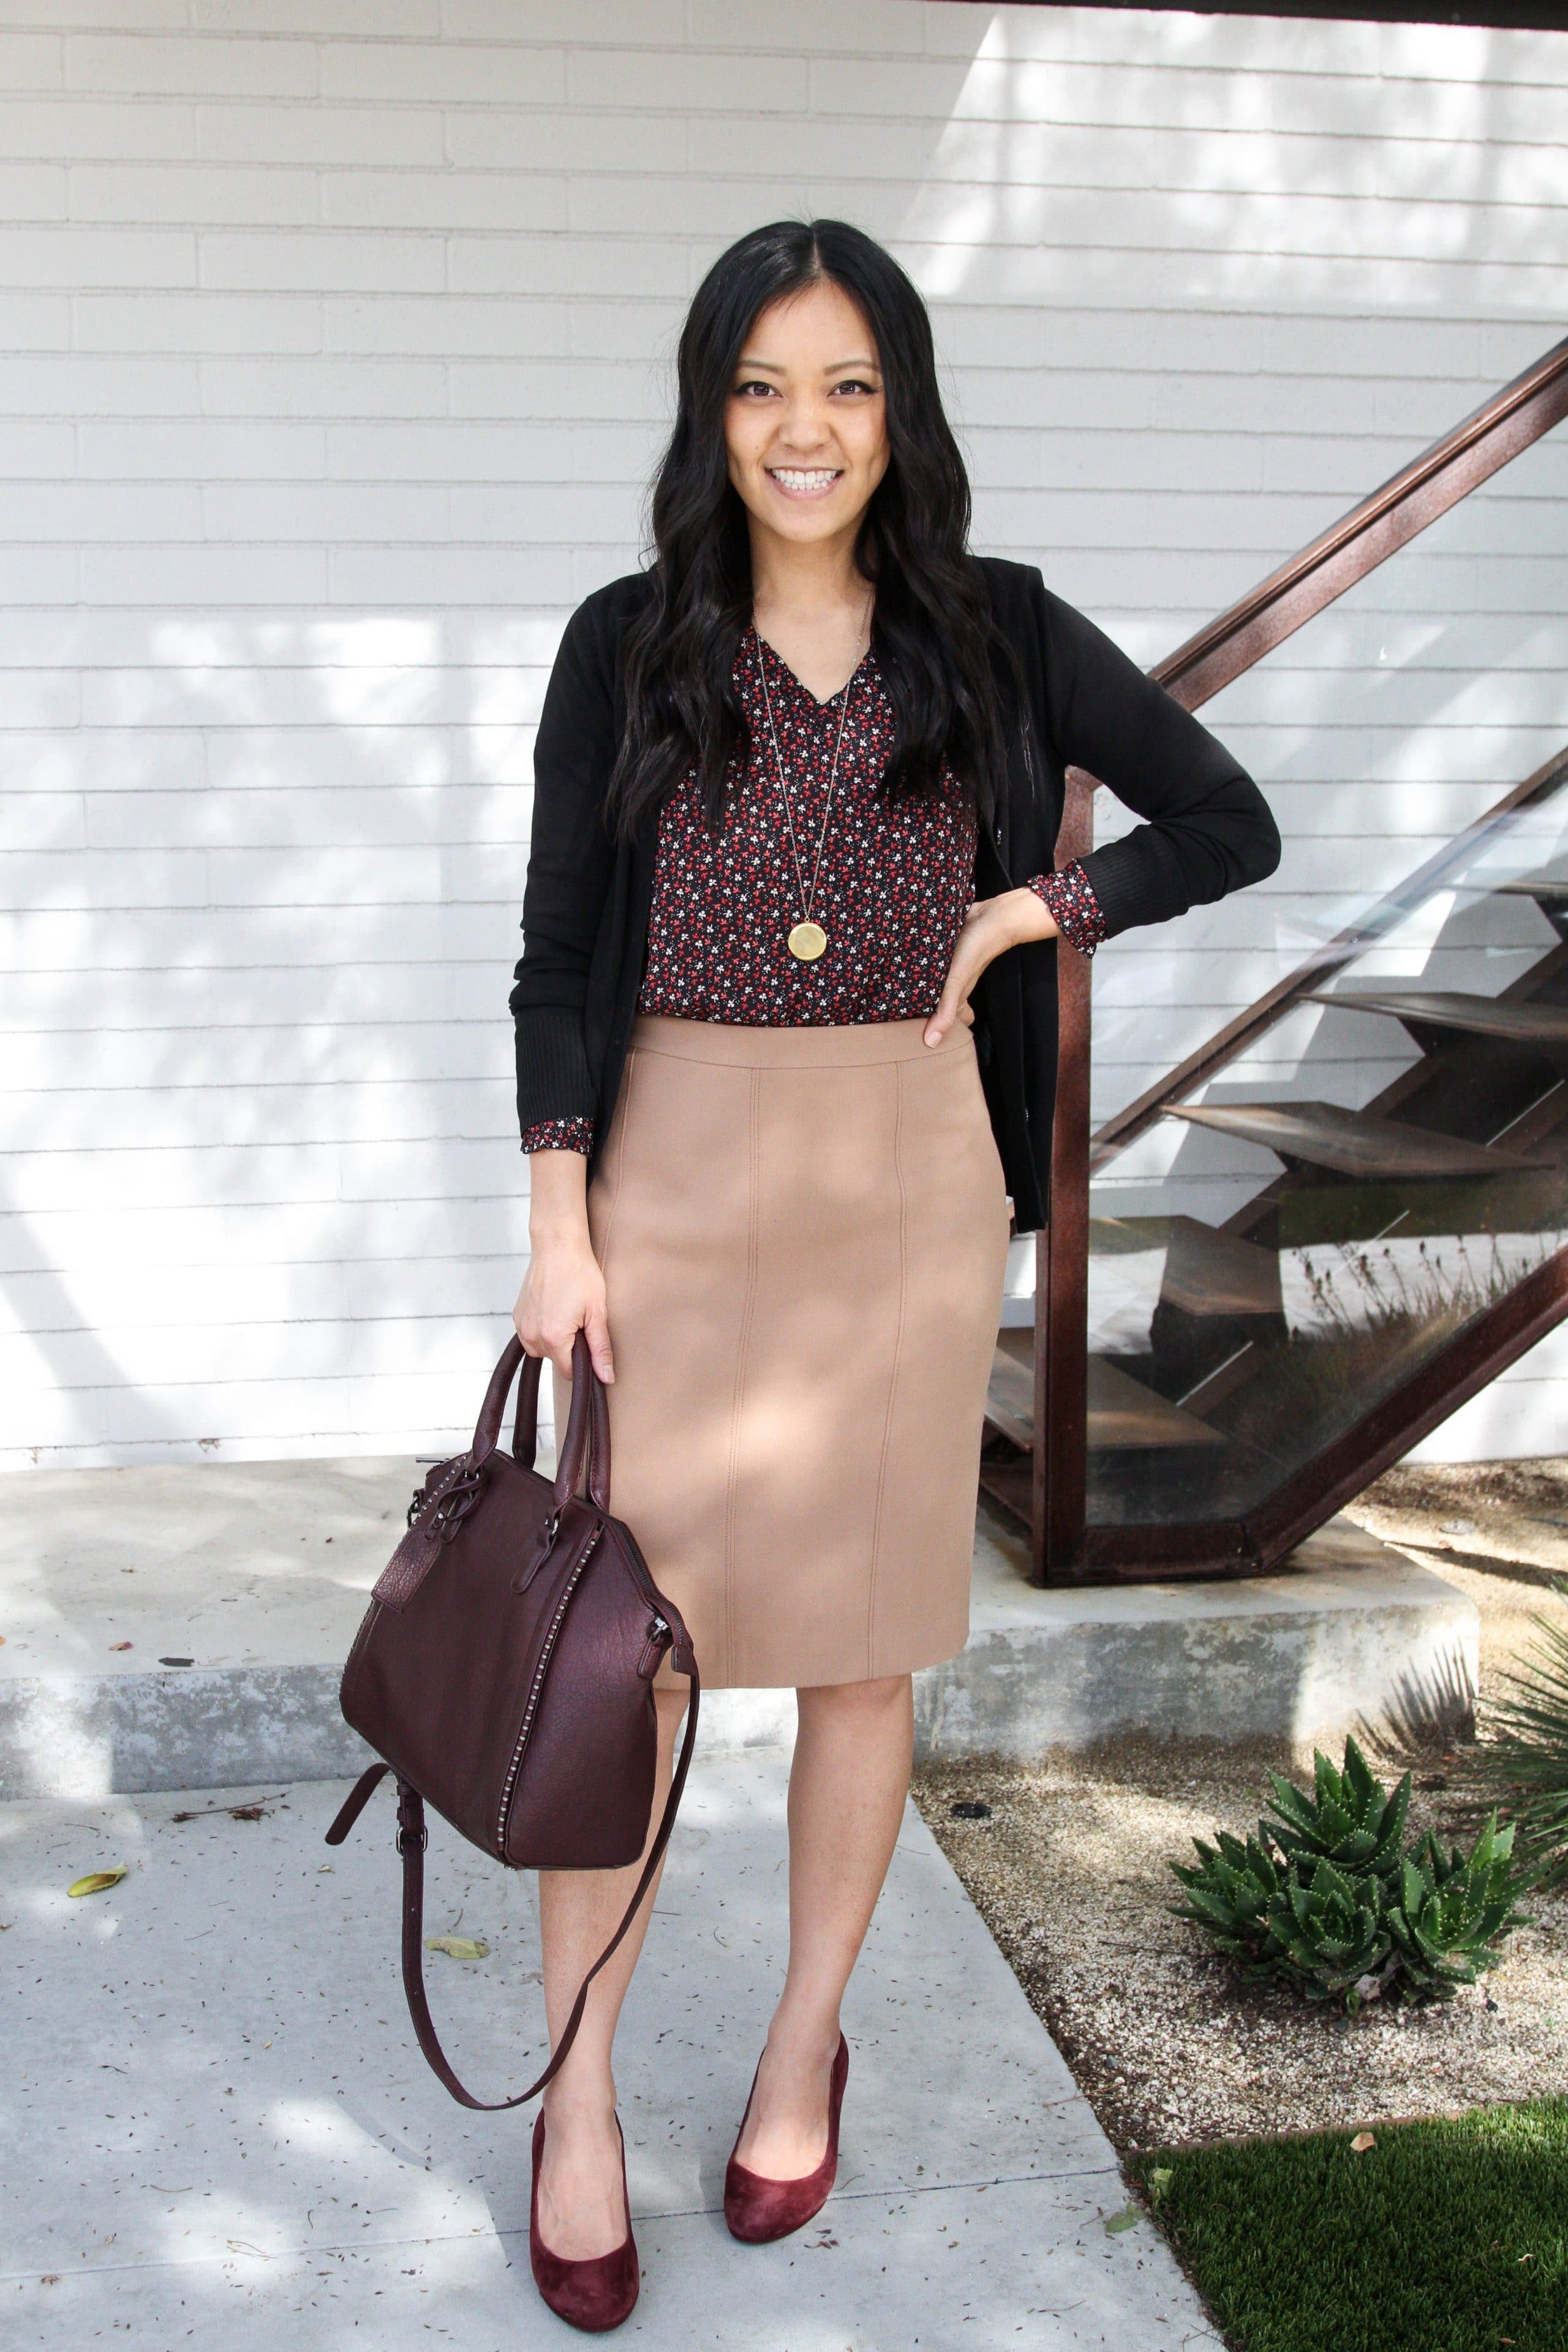 6a255b222ae4 Business Casual: Tan Pencil Skirt + Floral Blouse + Black Cardigan + Pumps  + Gold ...